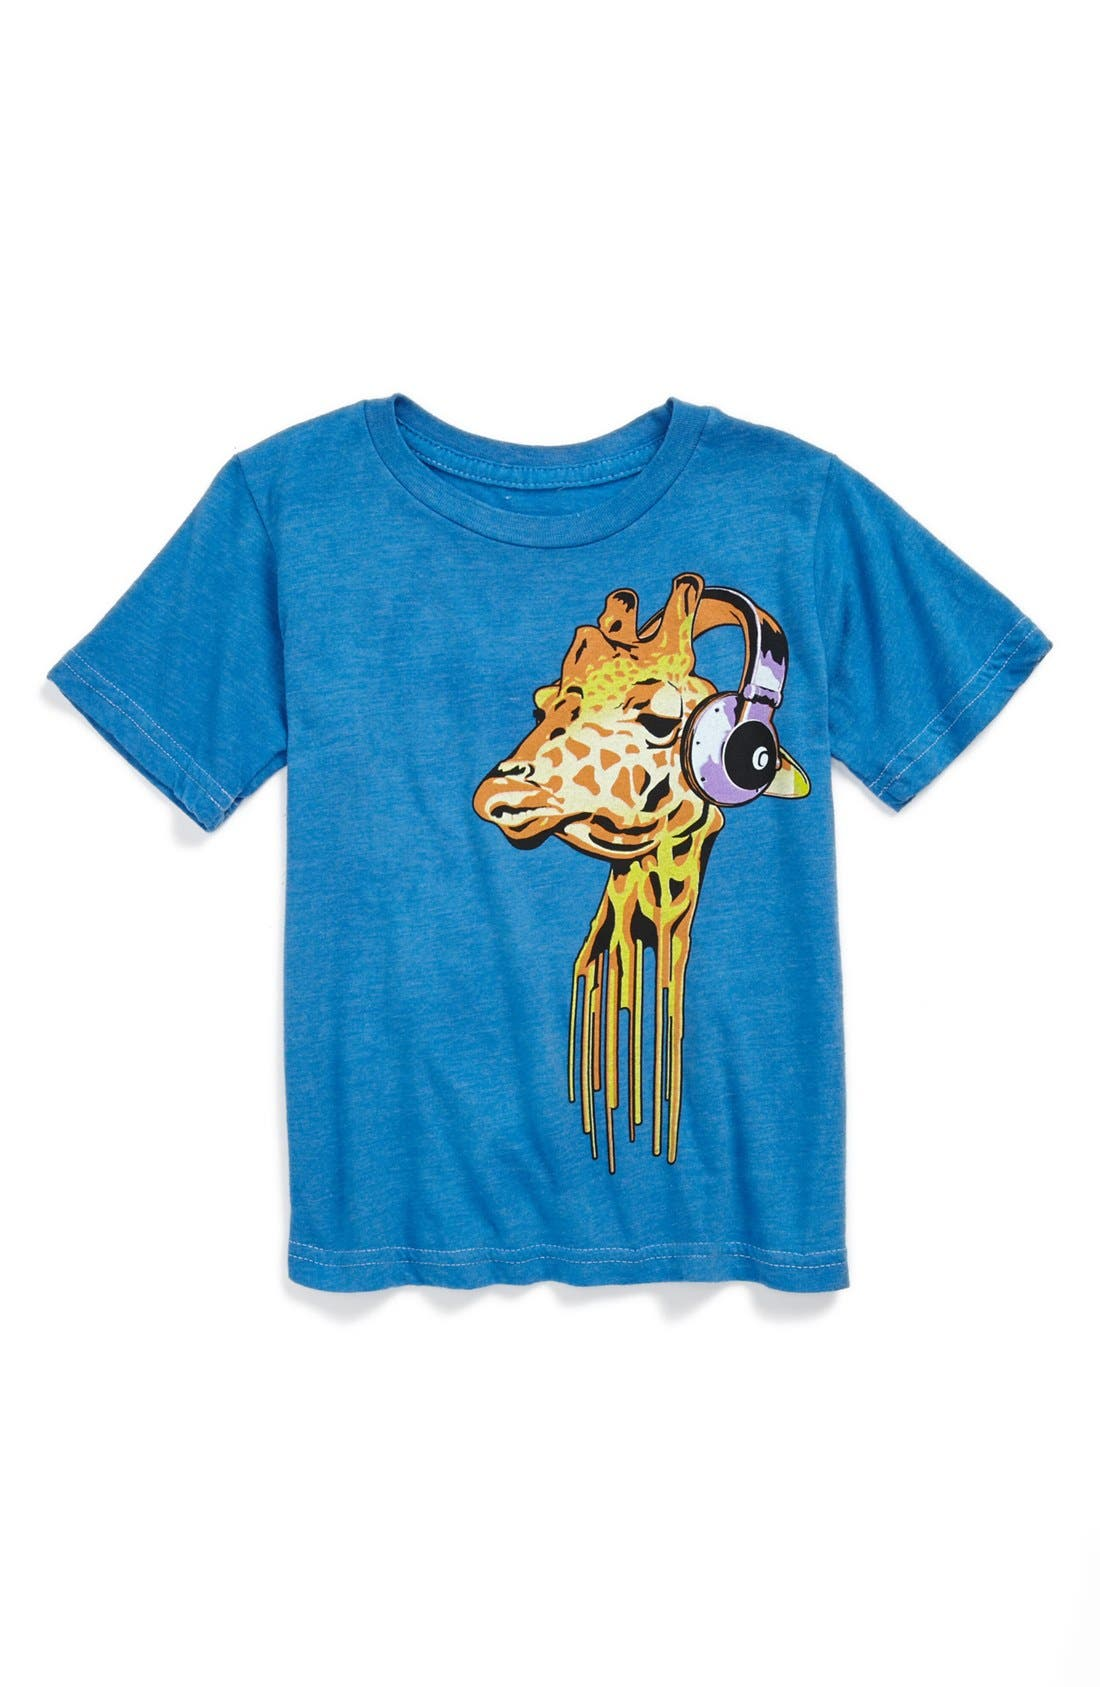 Alternate Image 1 Selected - Jem 'Heads Up Sky Diver' T-Shirt (Toddler Boys)